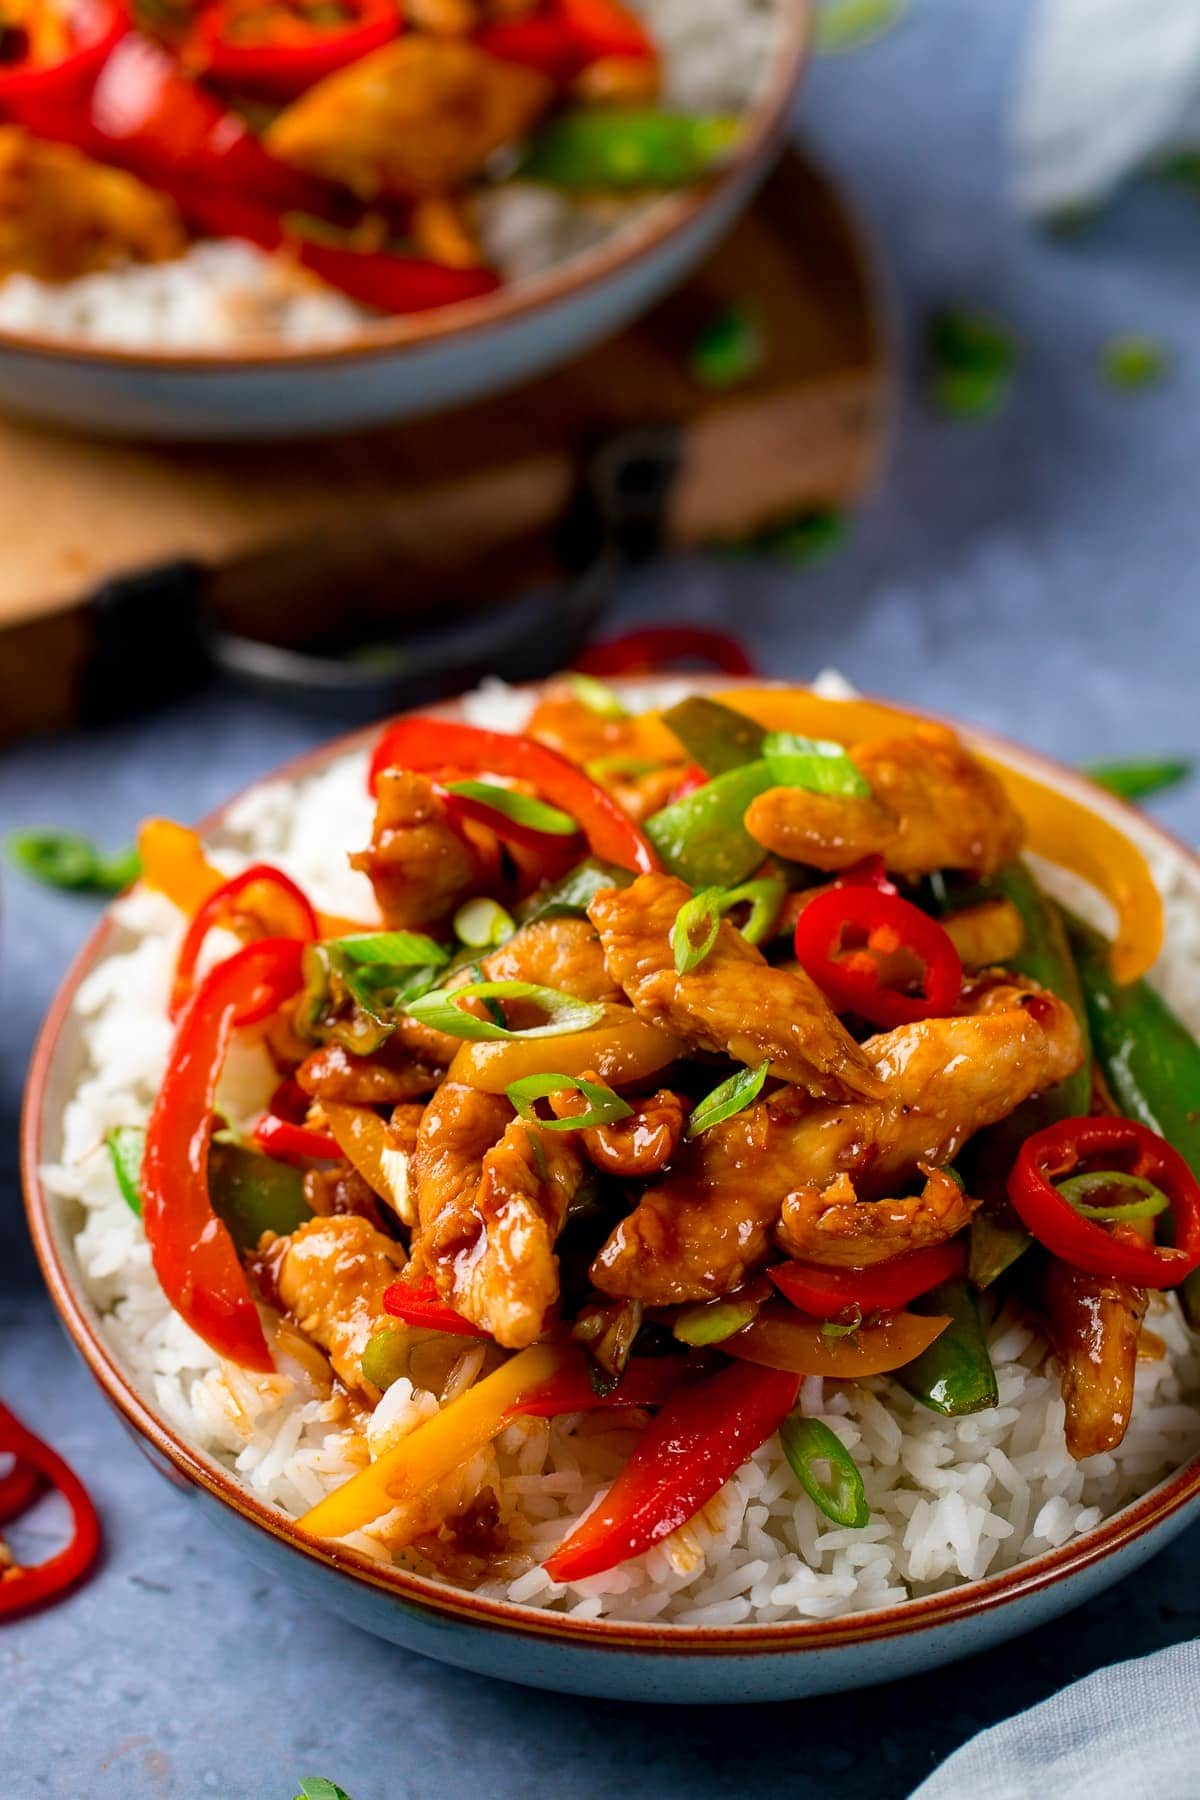 chicken stir fry with rice in a bowl topped with chillies and spring onions